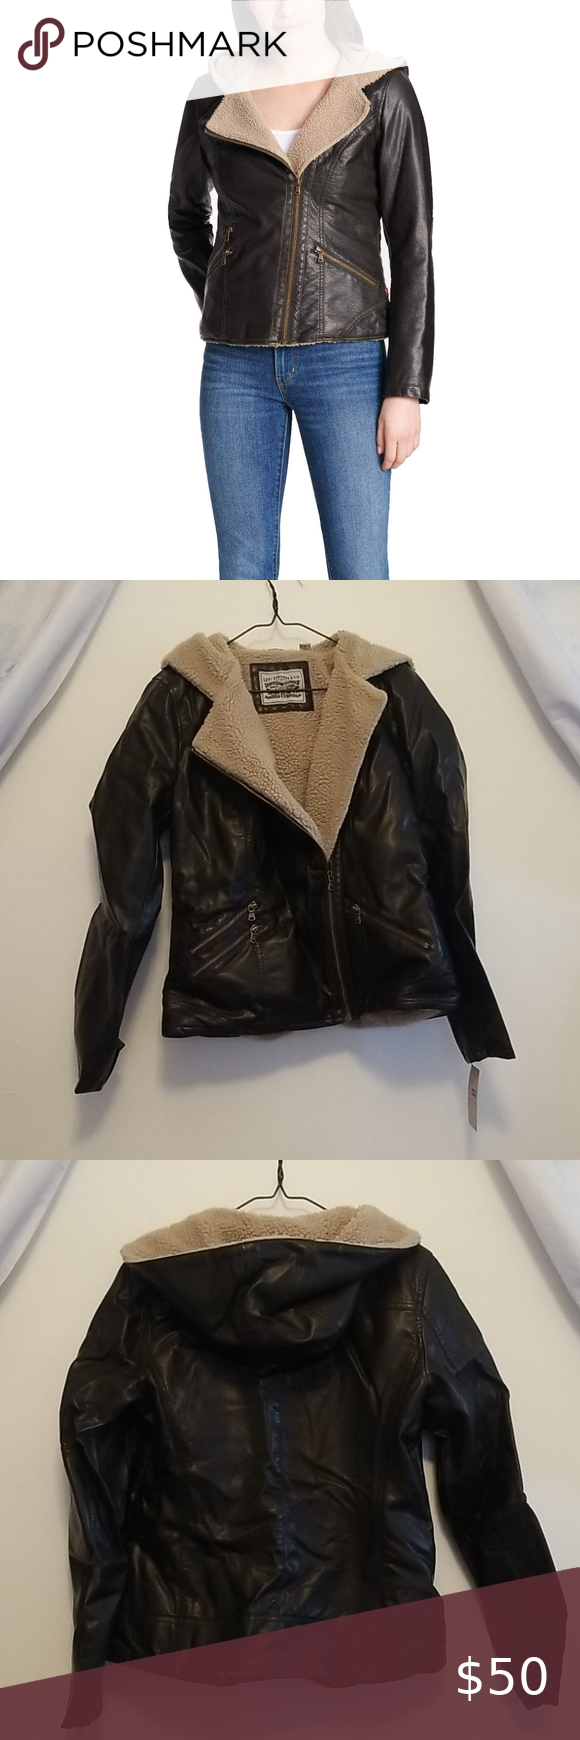 NWT Levi's Leather/Sherpa Jacket (M) in 2020 Jackets